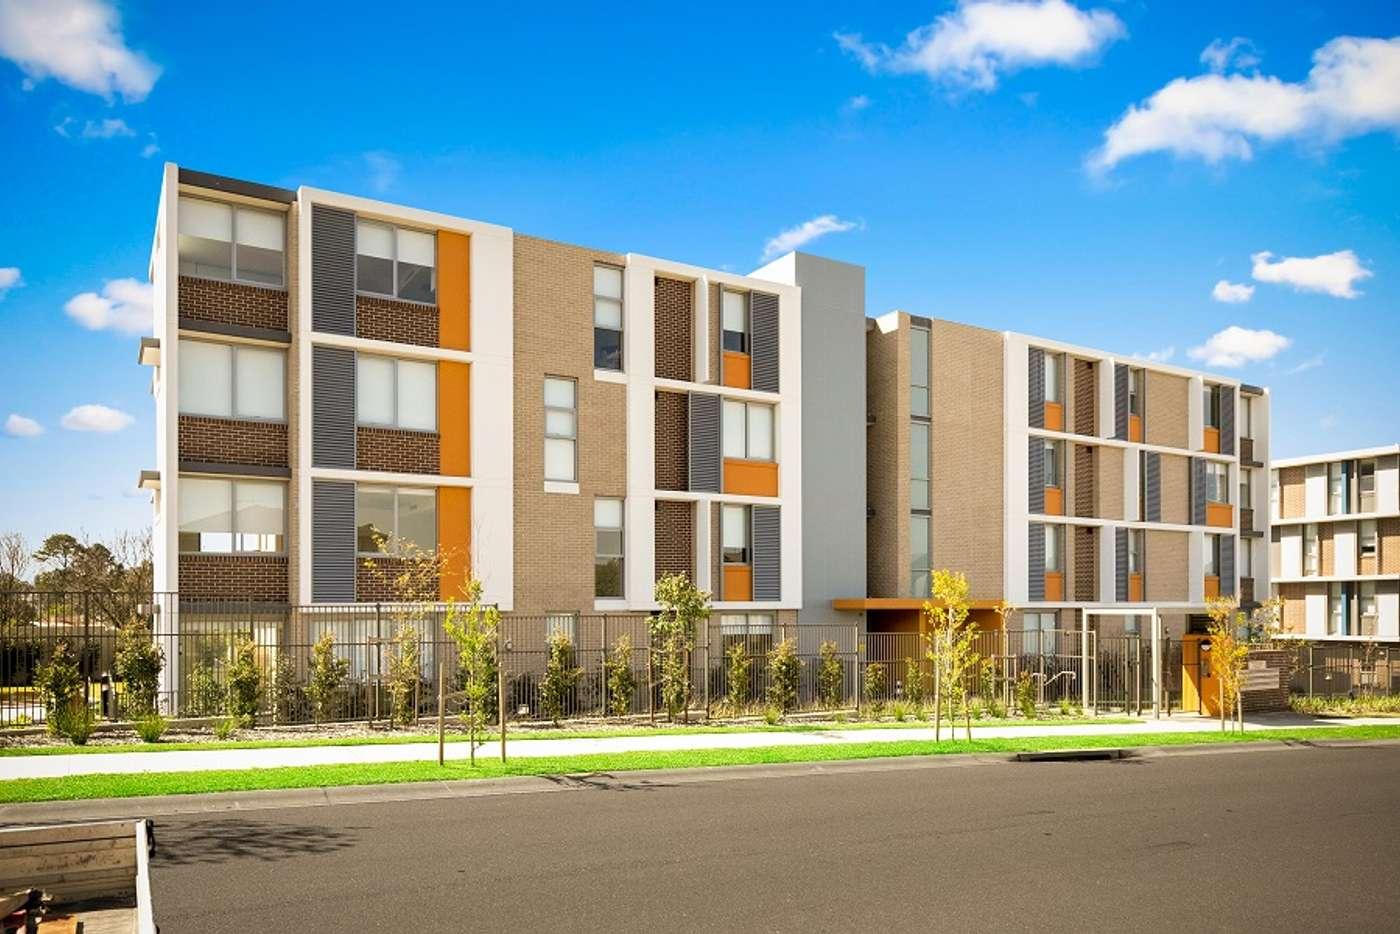 Main view of Homely apartment listing, 307/2 Affleck Cct, Kellyville NSW 2155